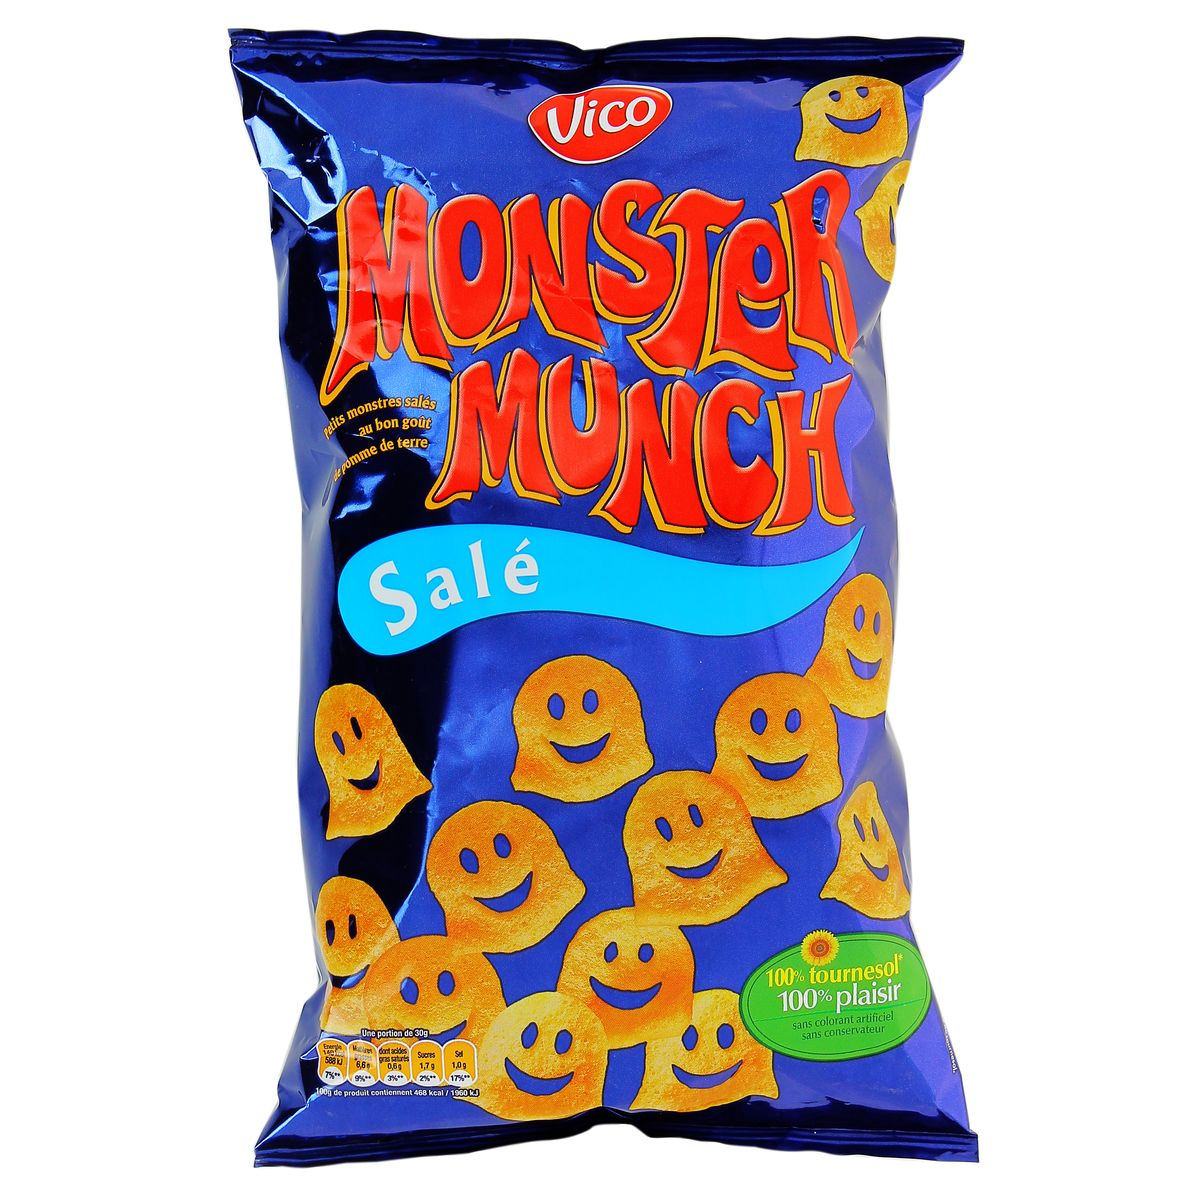 Monster Munch salé, Vico (85 g)